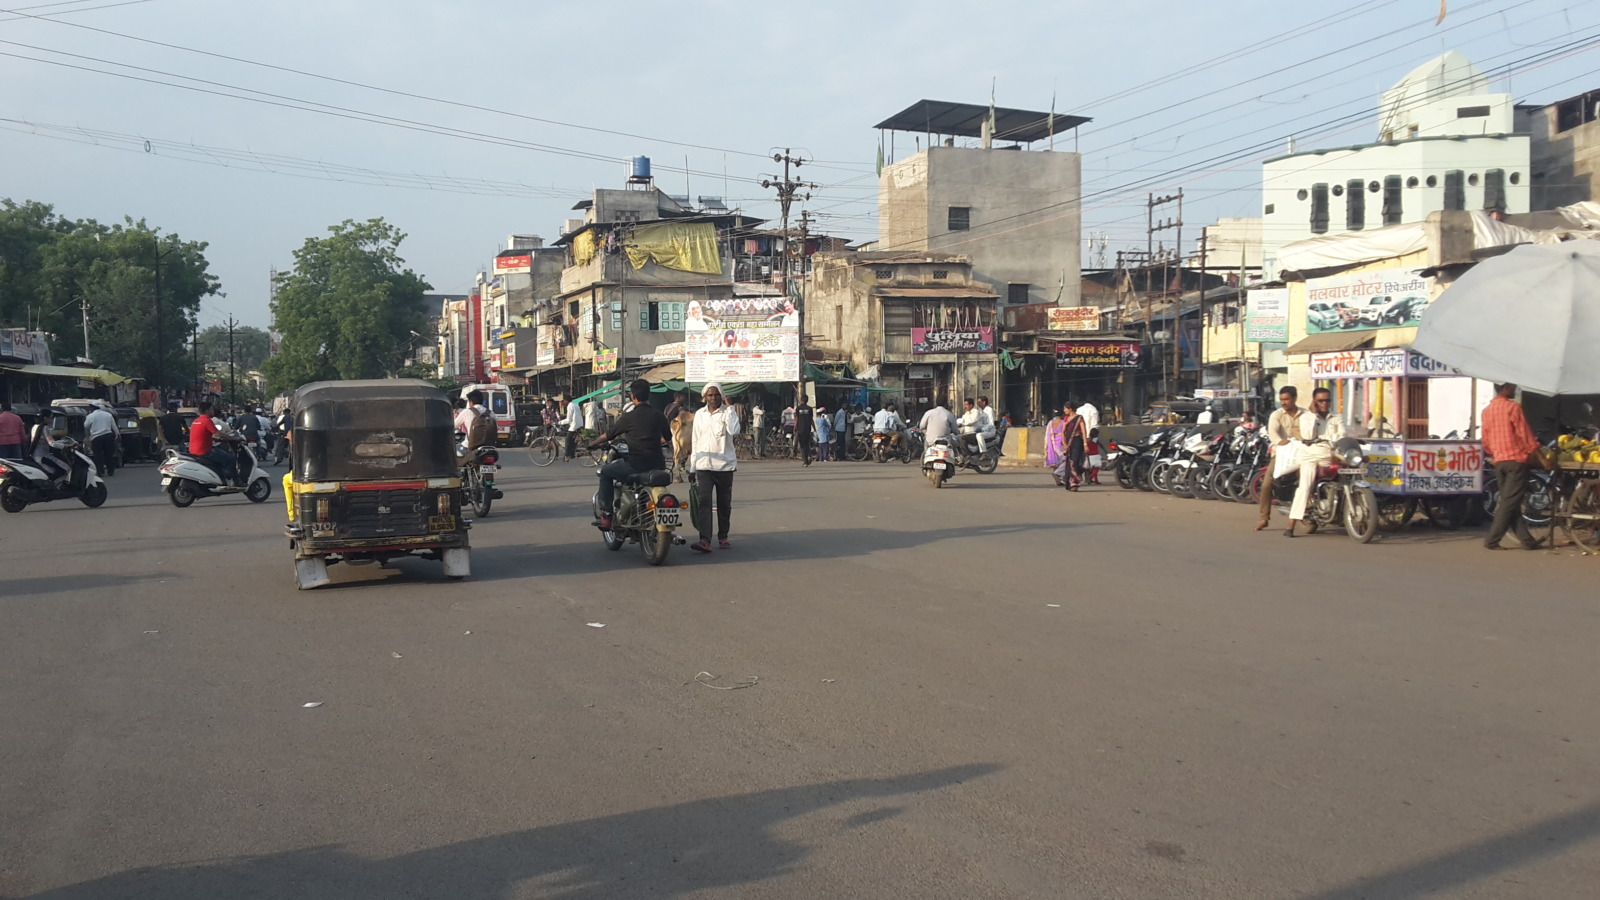 Crossroads in Dhule.